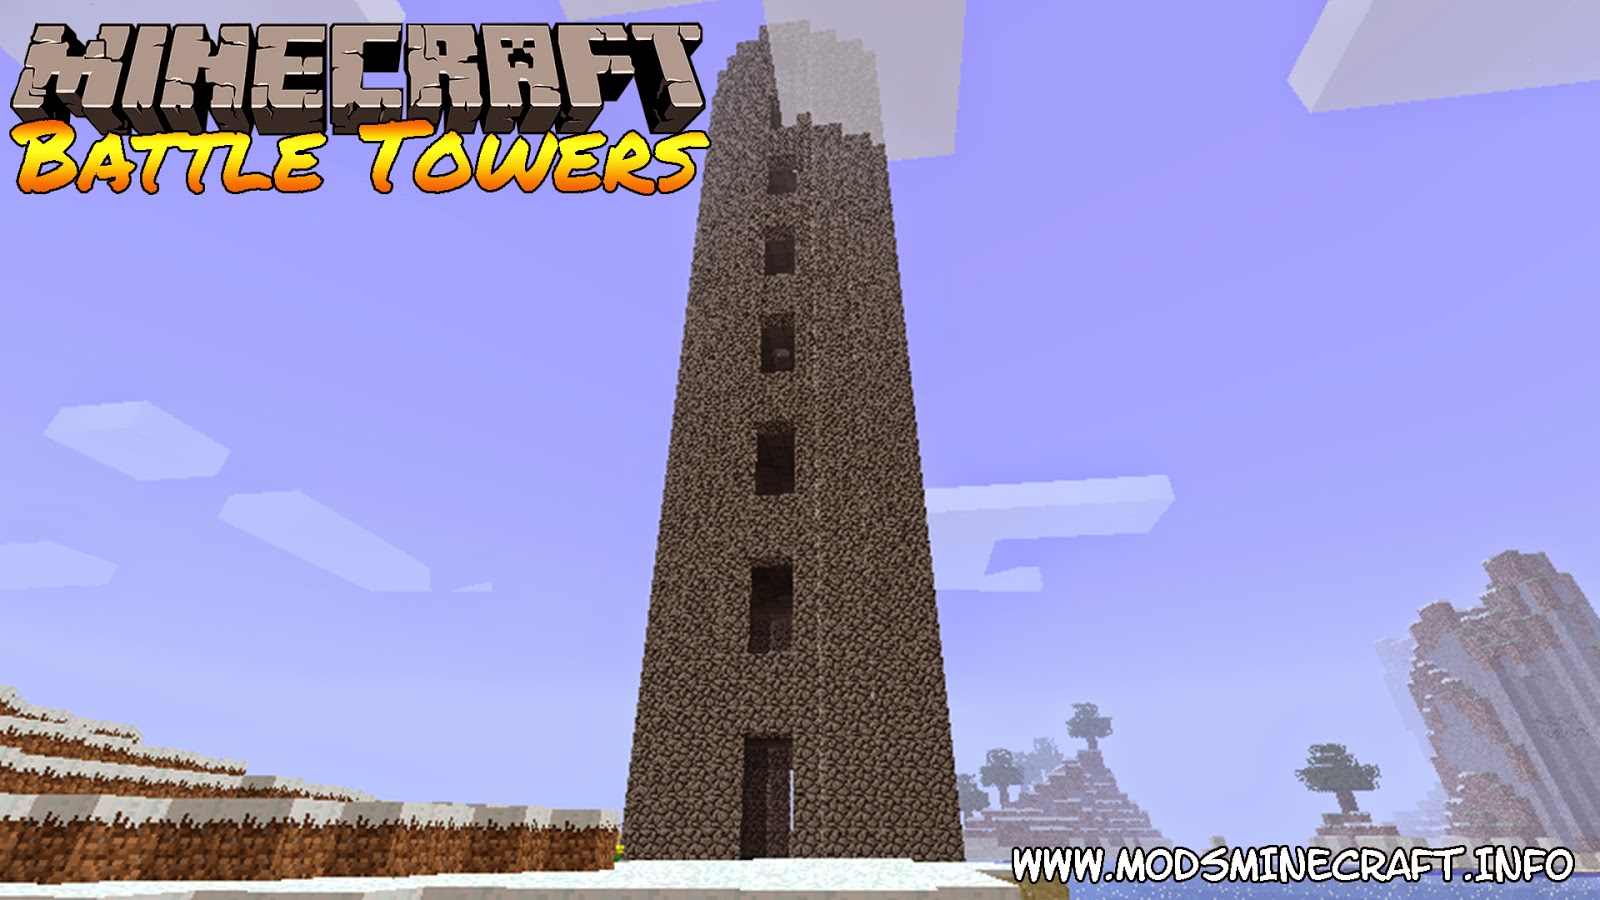 Battle Towers Mod para Minecraft 1.7, Battle Towers Mod, Battle Towers 1.7.2, Battle Towers 1.7.10, minecraft Battle Towers Mod, minecraft Battle Towers 1.7.2, minecraft Battle Towers 1.7.10, mods minecraft, minecraft mods, mods para minecraft, mods para minecraft 1.7.2, mods para minecraft 1.7.10, cómo instalar mods, cómo instalar mods minecraft, minecraft cómo instalar mods